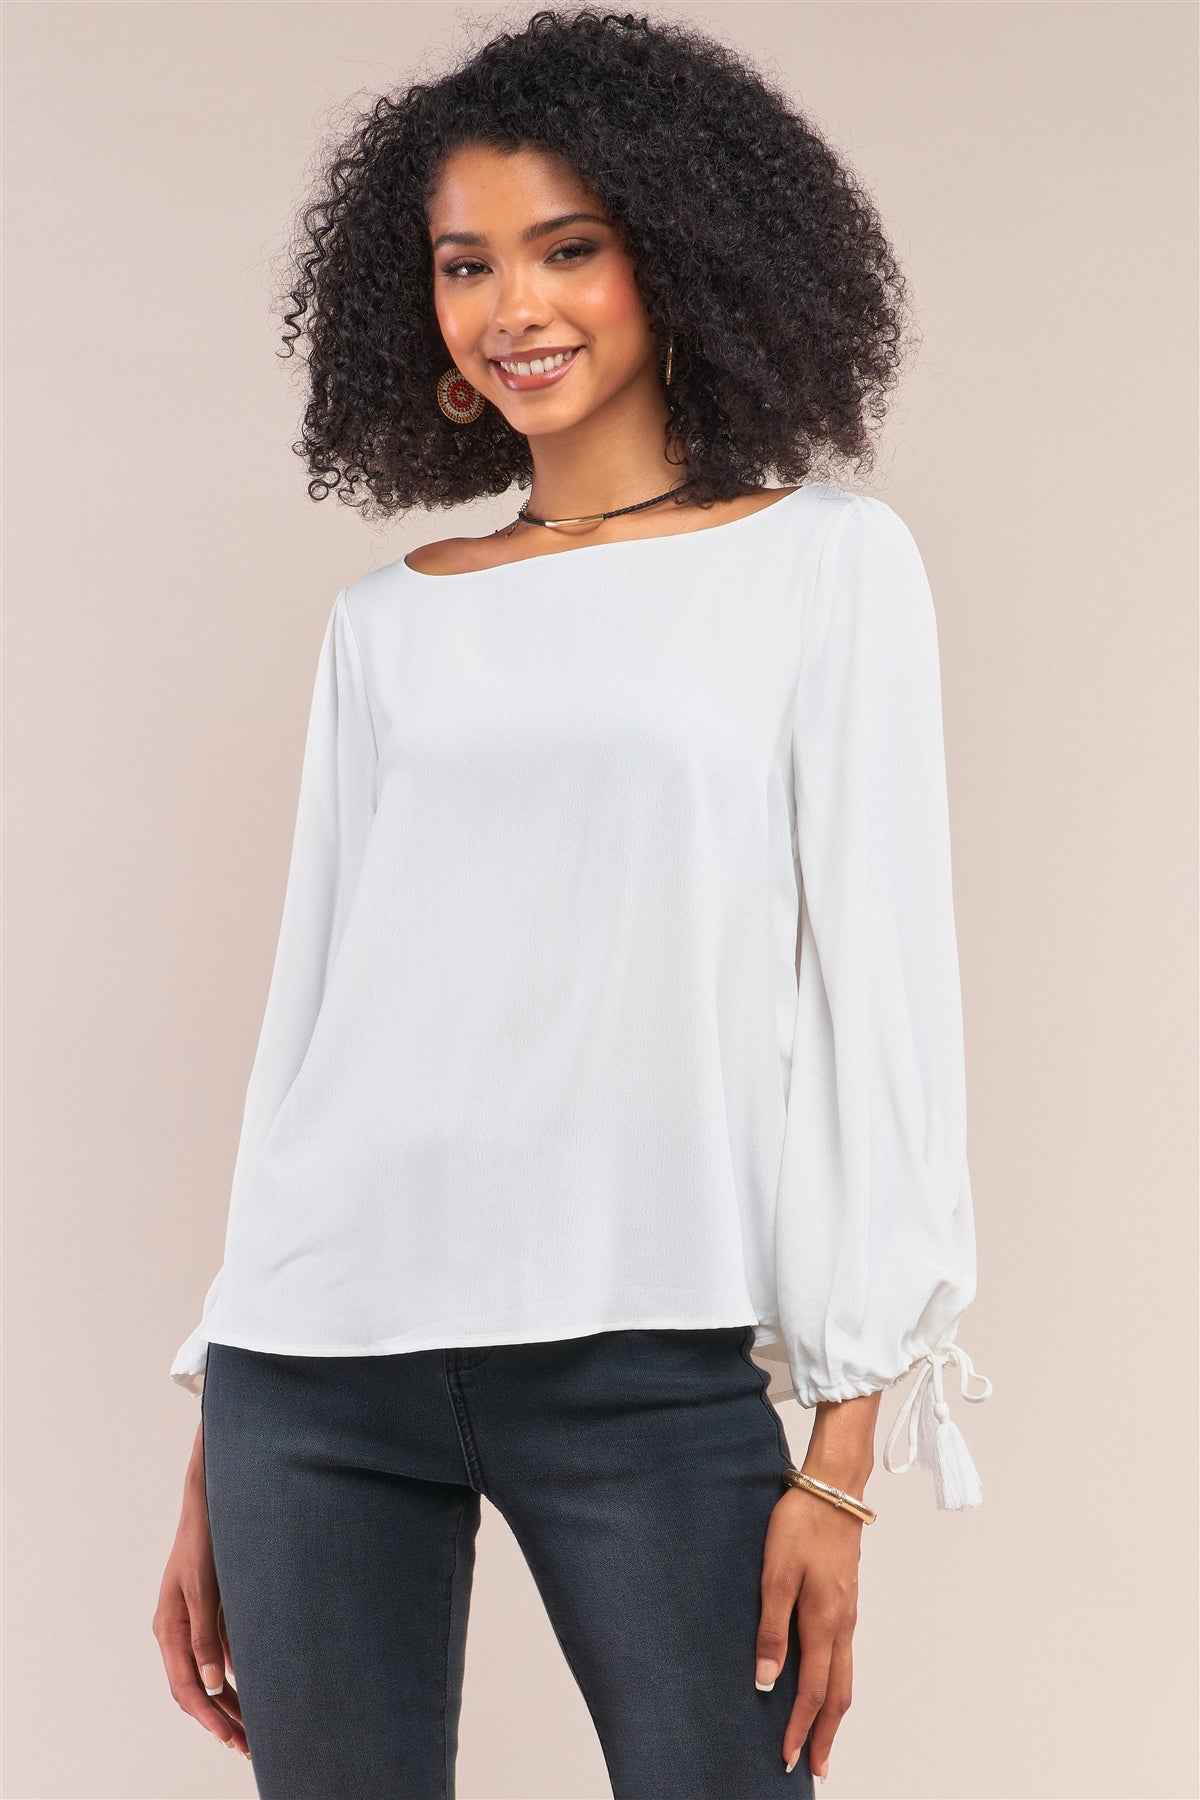 White Bateau Neck Relaxed Fit Tassel Tie Detail Long Sleeve Blouse